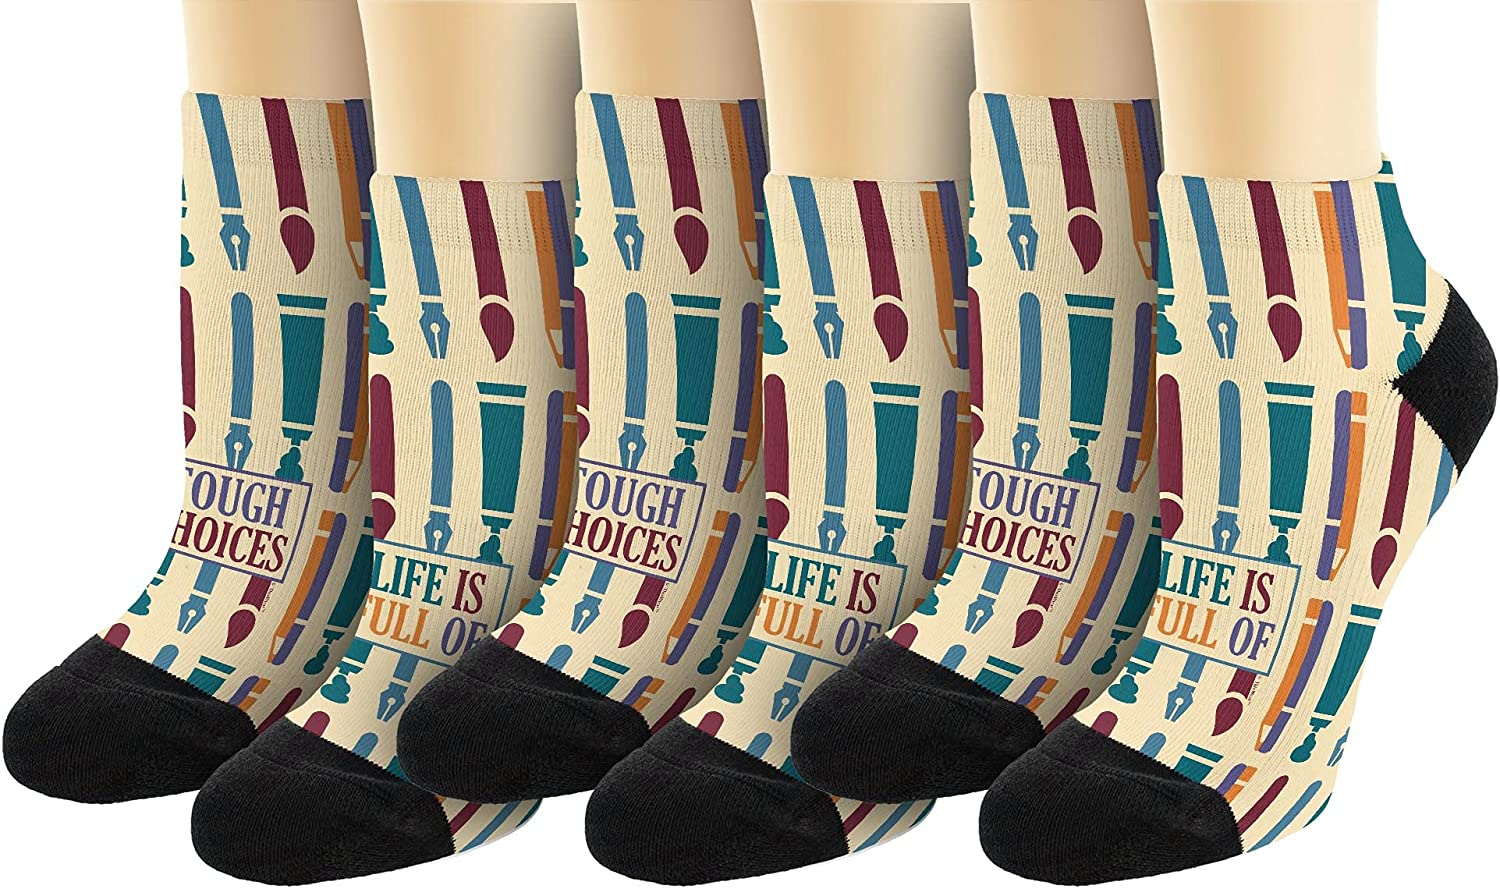 Life Is Full Of Tough Choices Art Supplies Novelty Ankle Socks